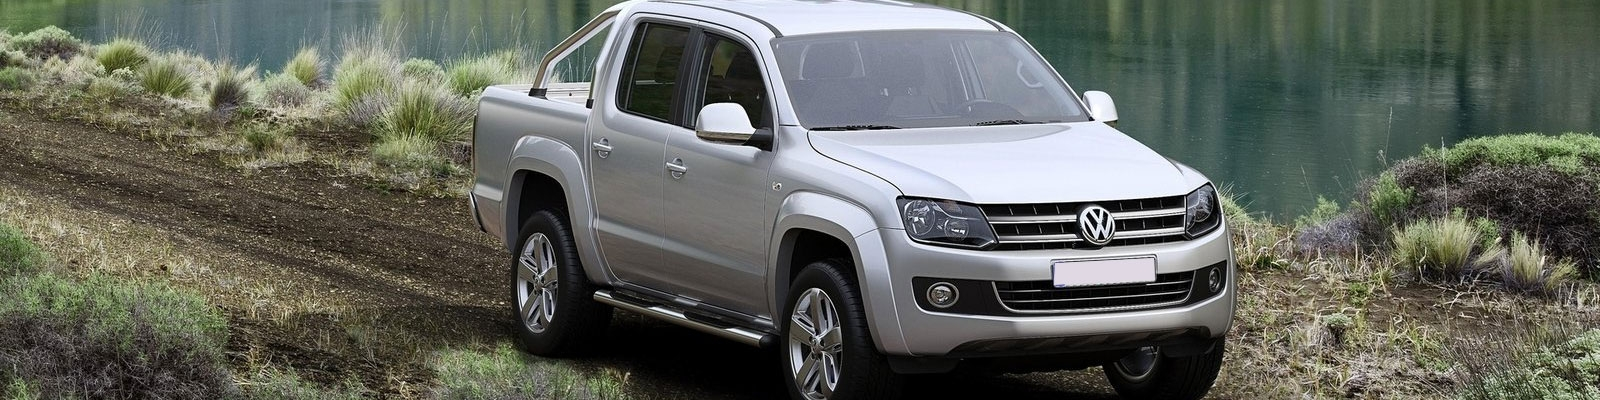 Accessories For VW Amarok 2011 To 2017